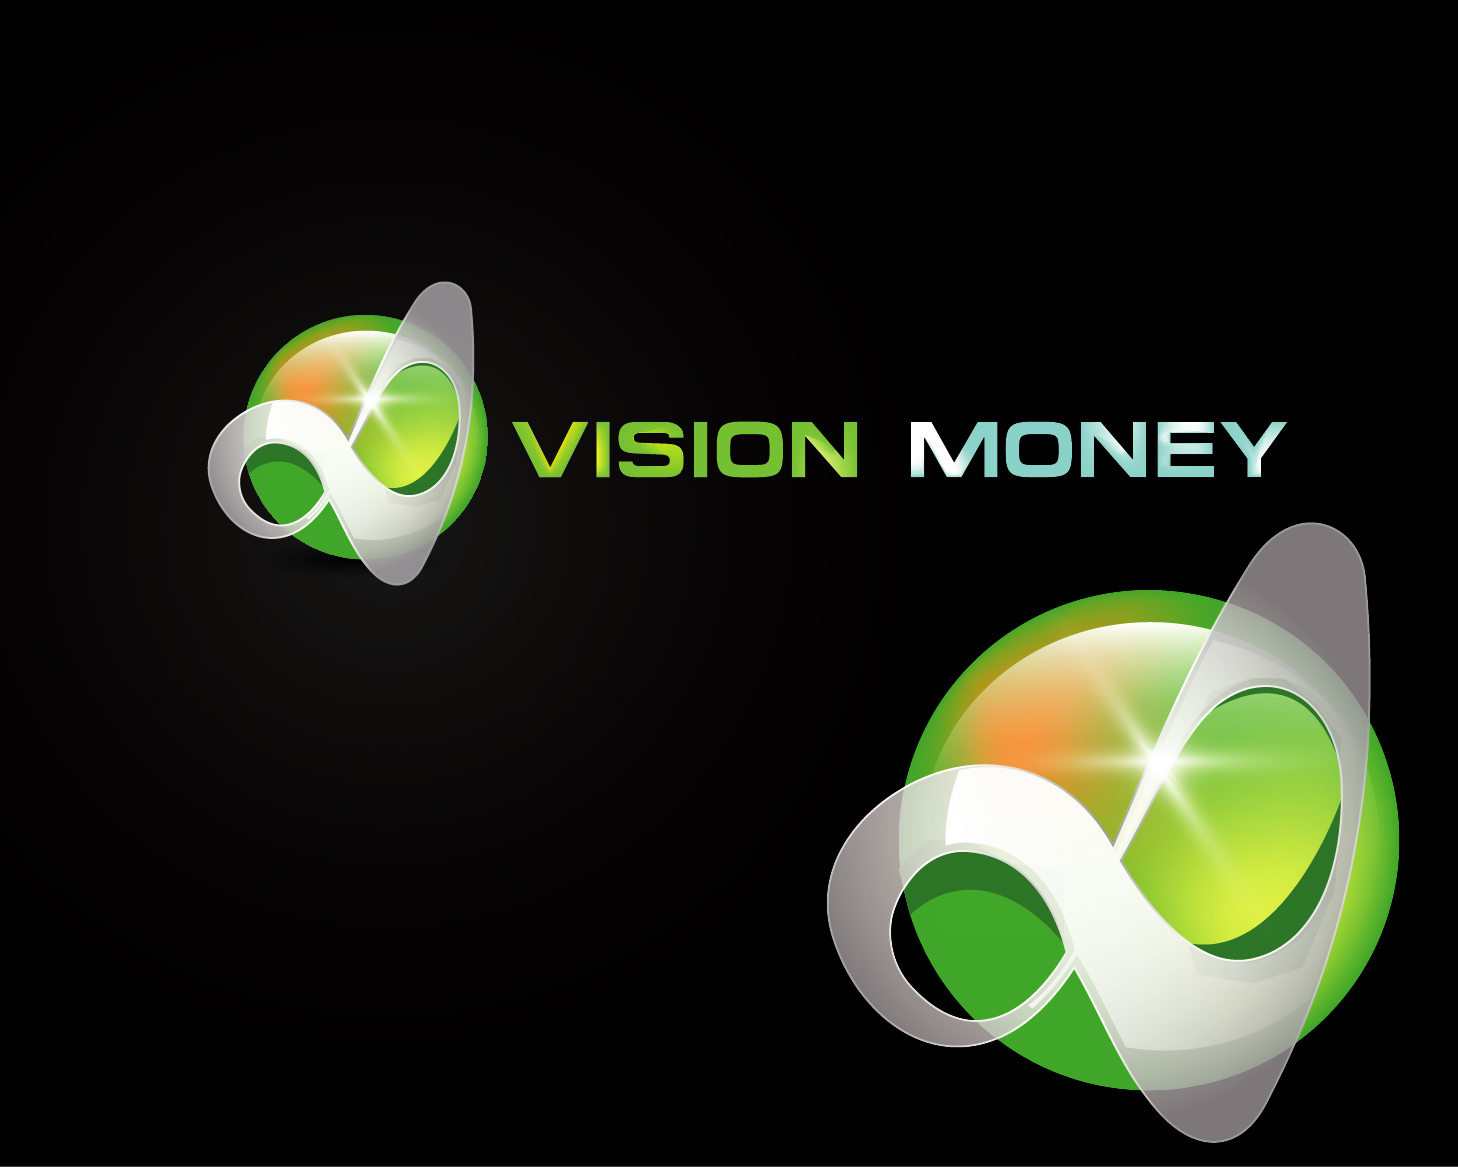 Logo Design by VENTSISLAV KOVACHEV - Entry No. 12 in the Logo Design Contest Captivating Logo Design for VISION MONEY.